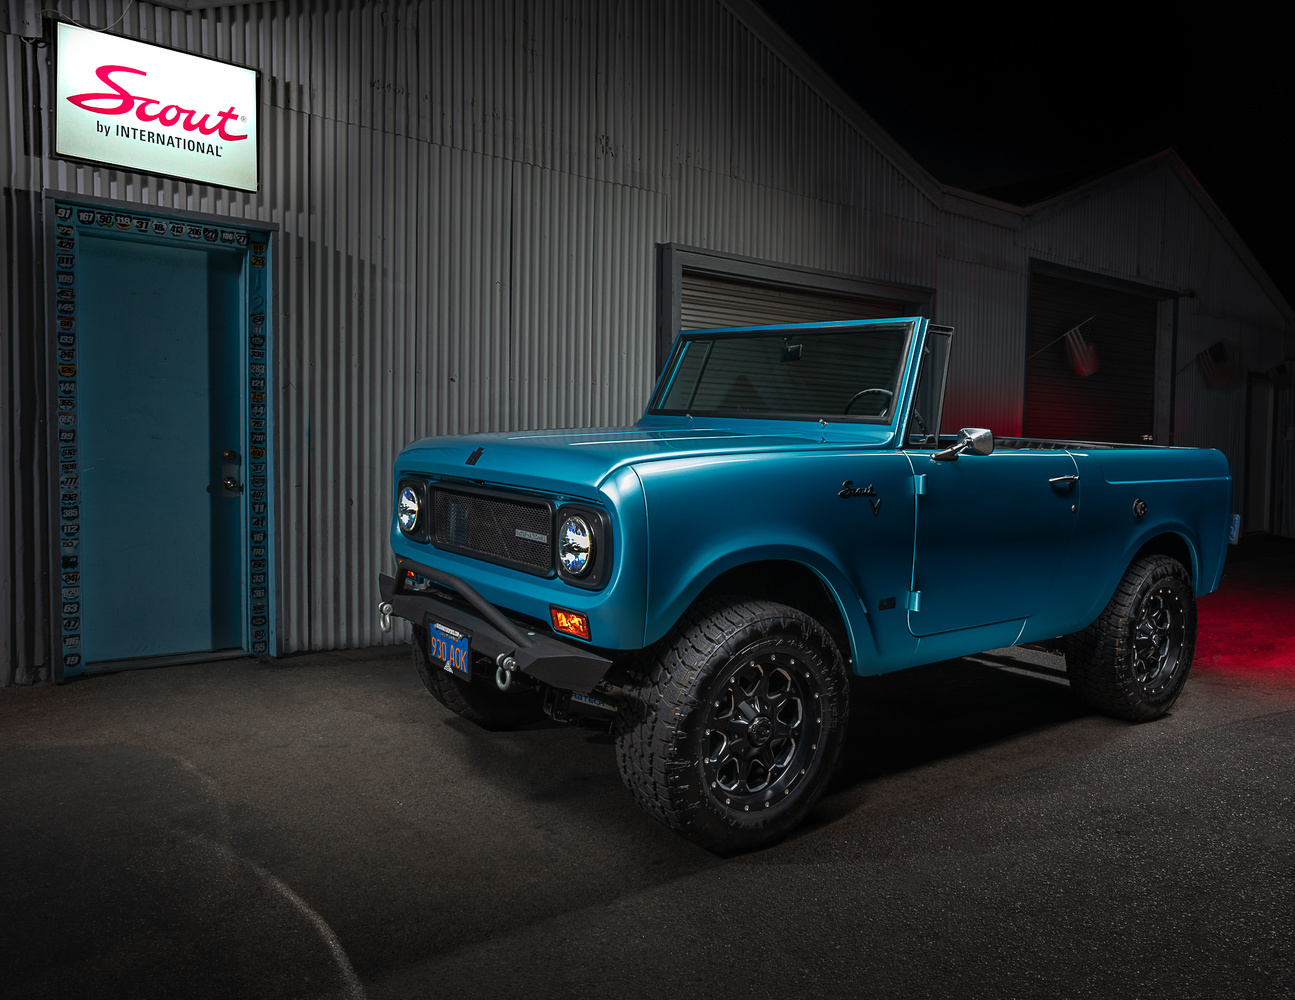 International Scout at DWS Classics by Creigh McIntyre